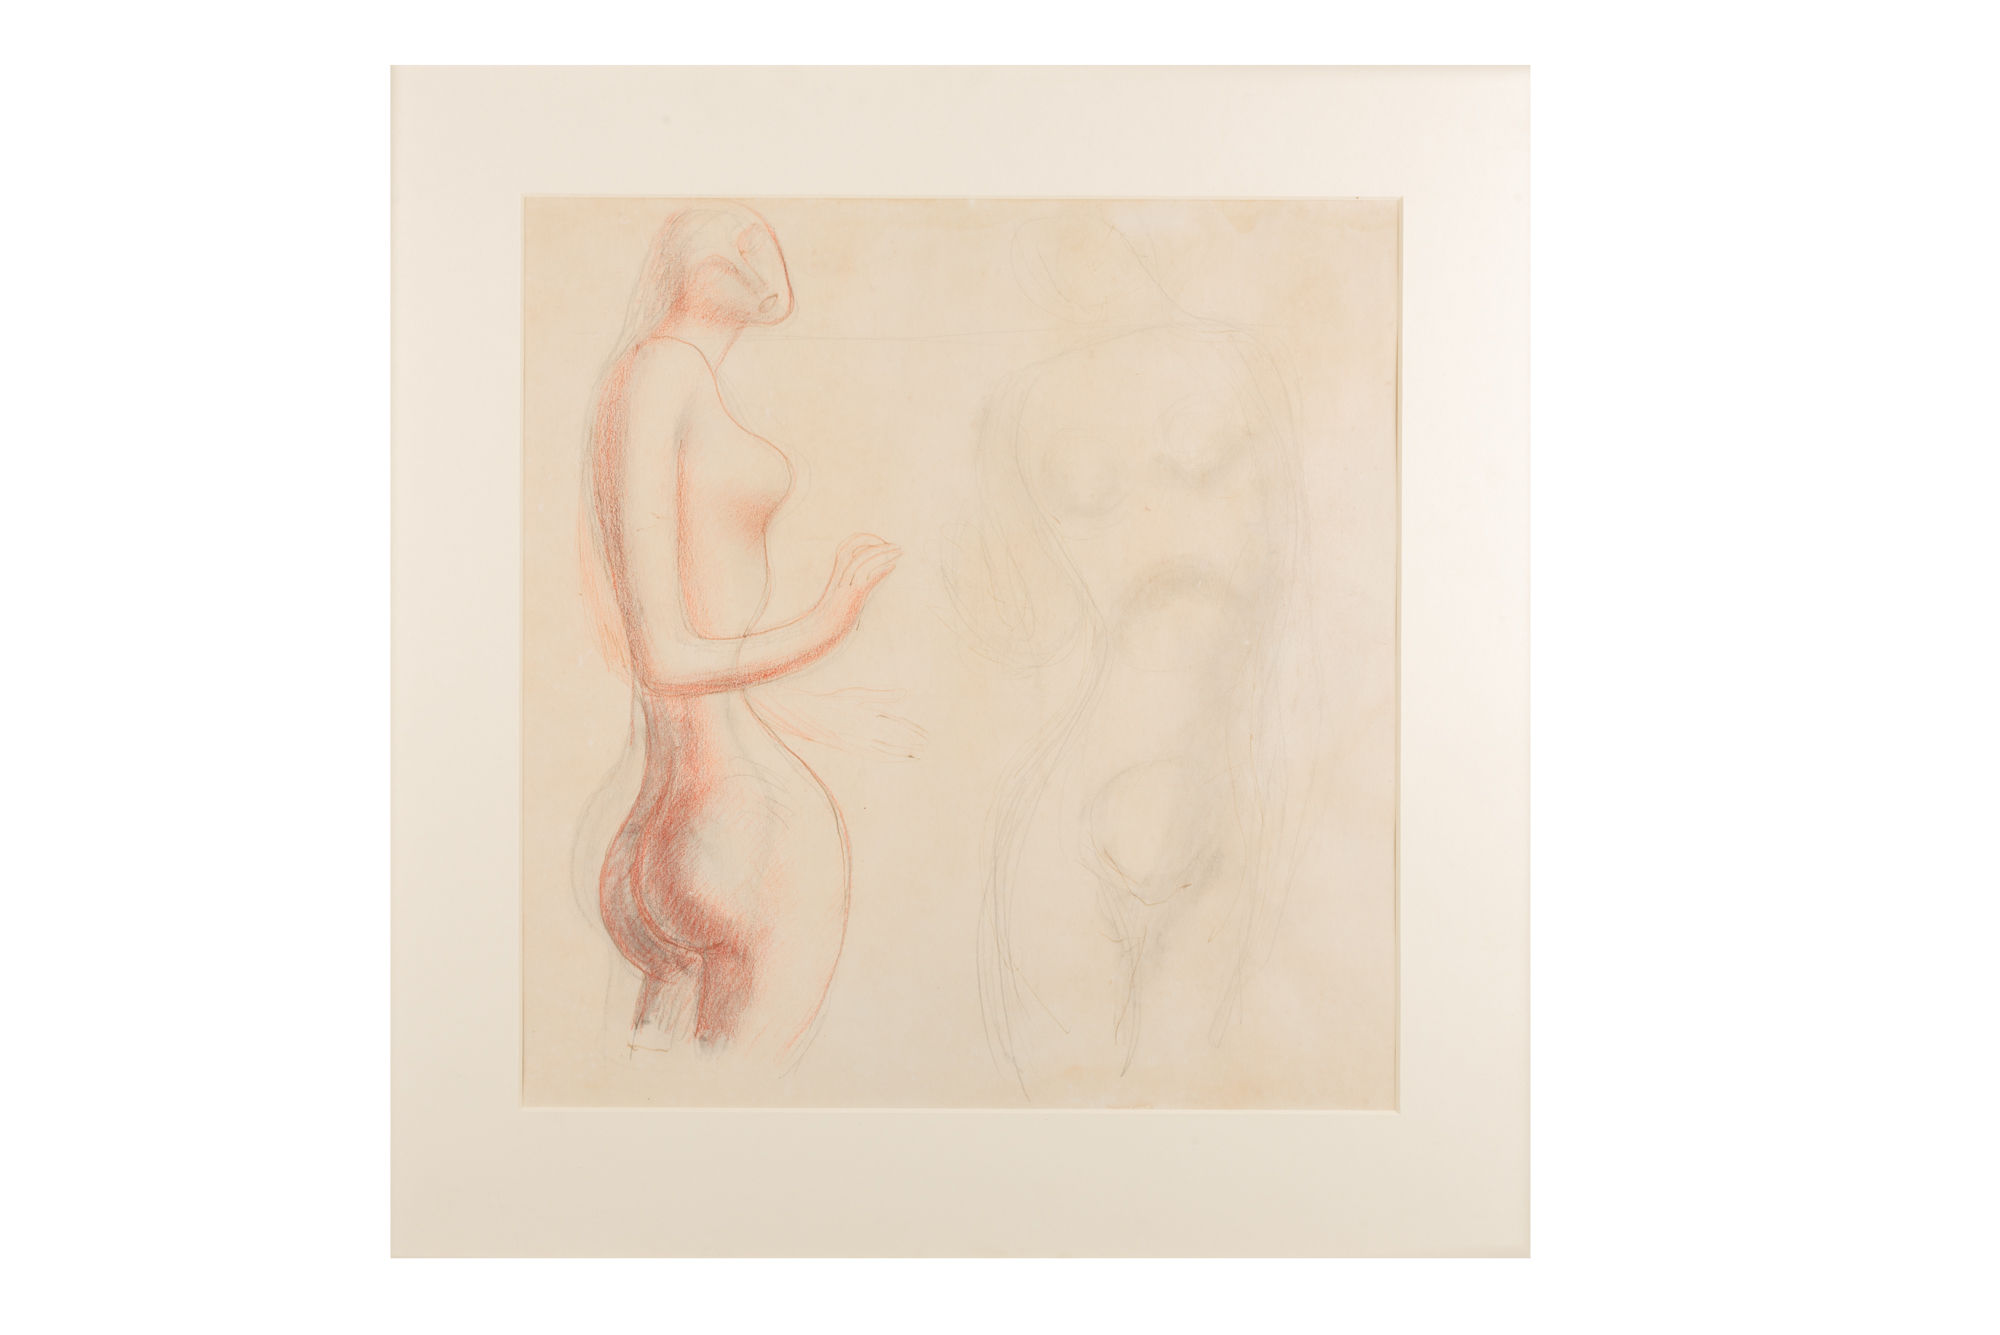 Untitled (Nude Studies) Leon Underwood 1890 - 1975